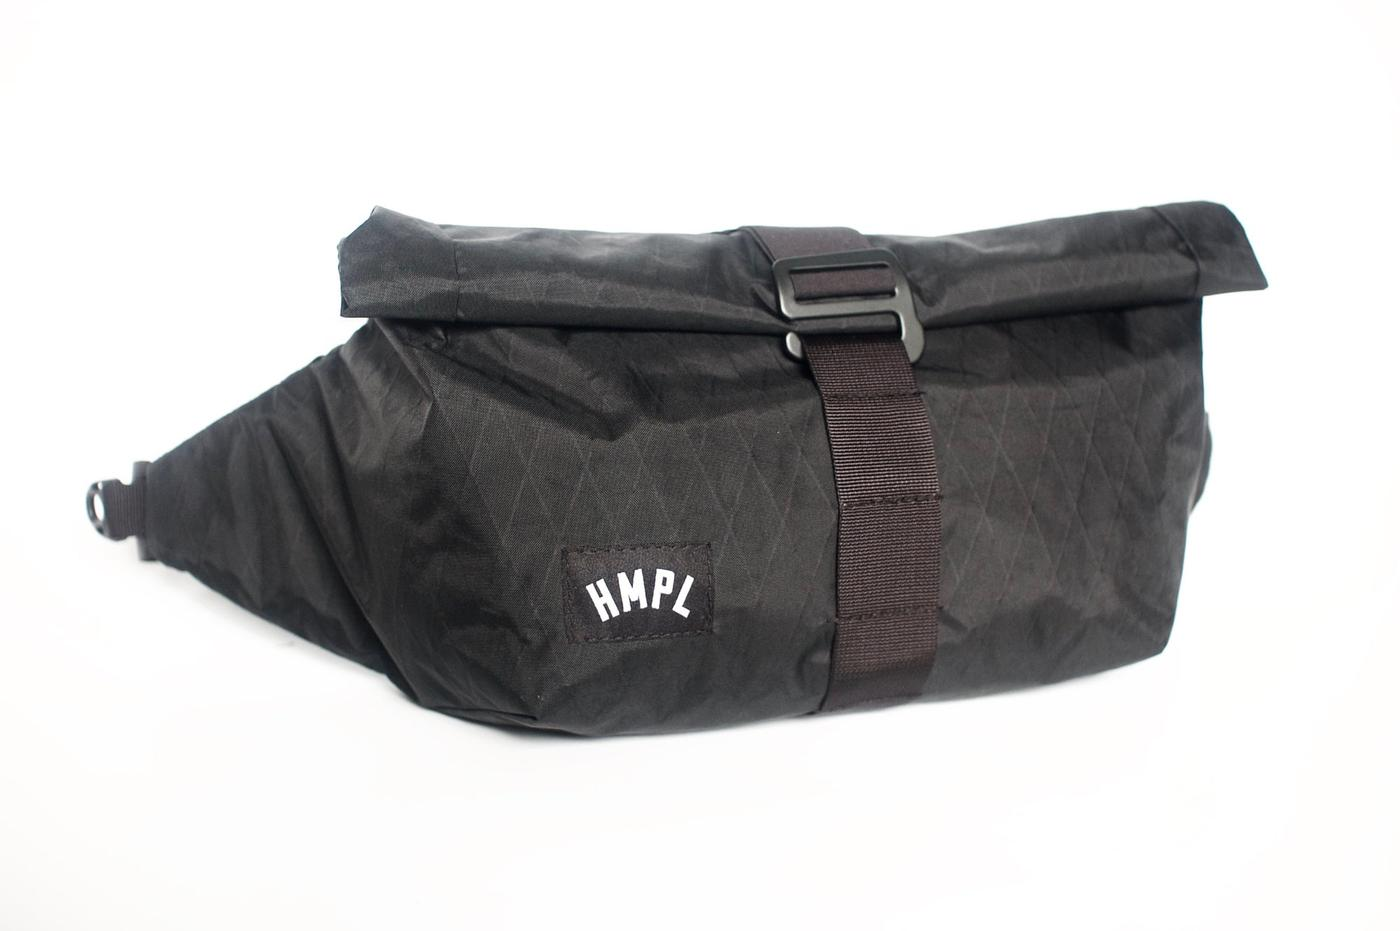 The HMPL 6 Pack Fanny Pack is Made in Canada